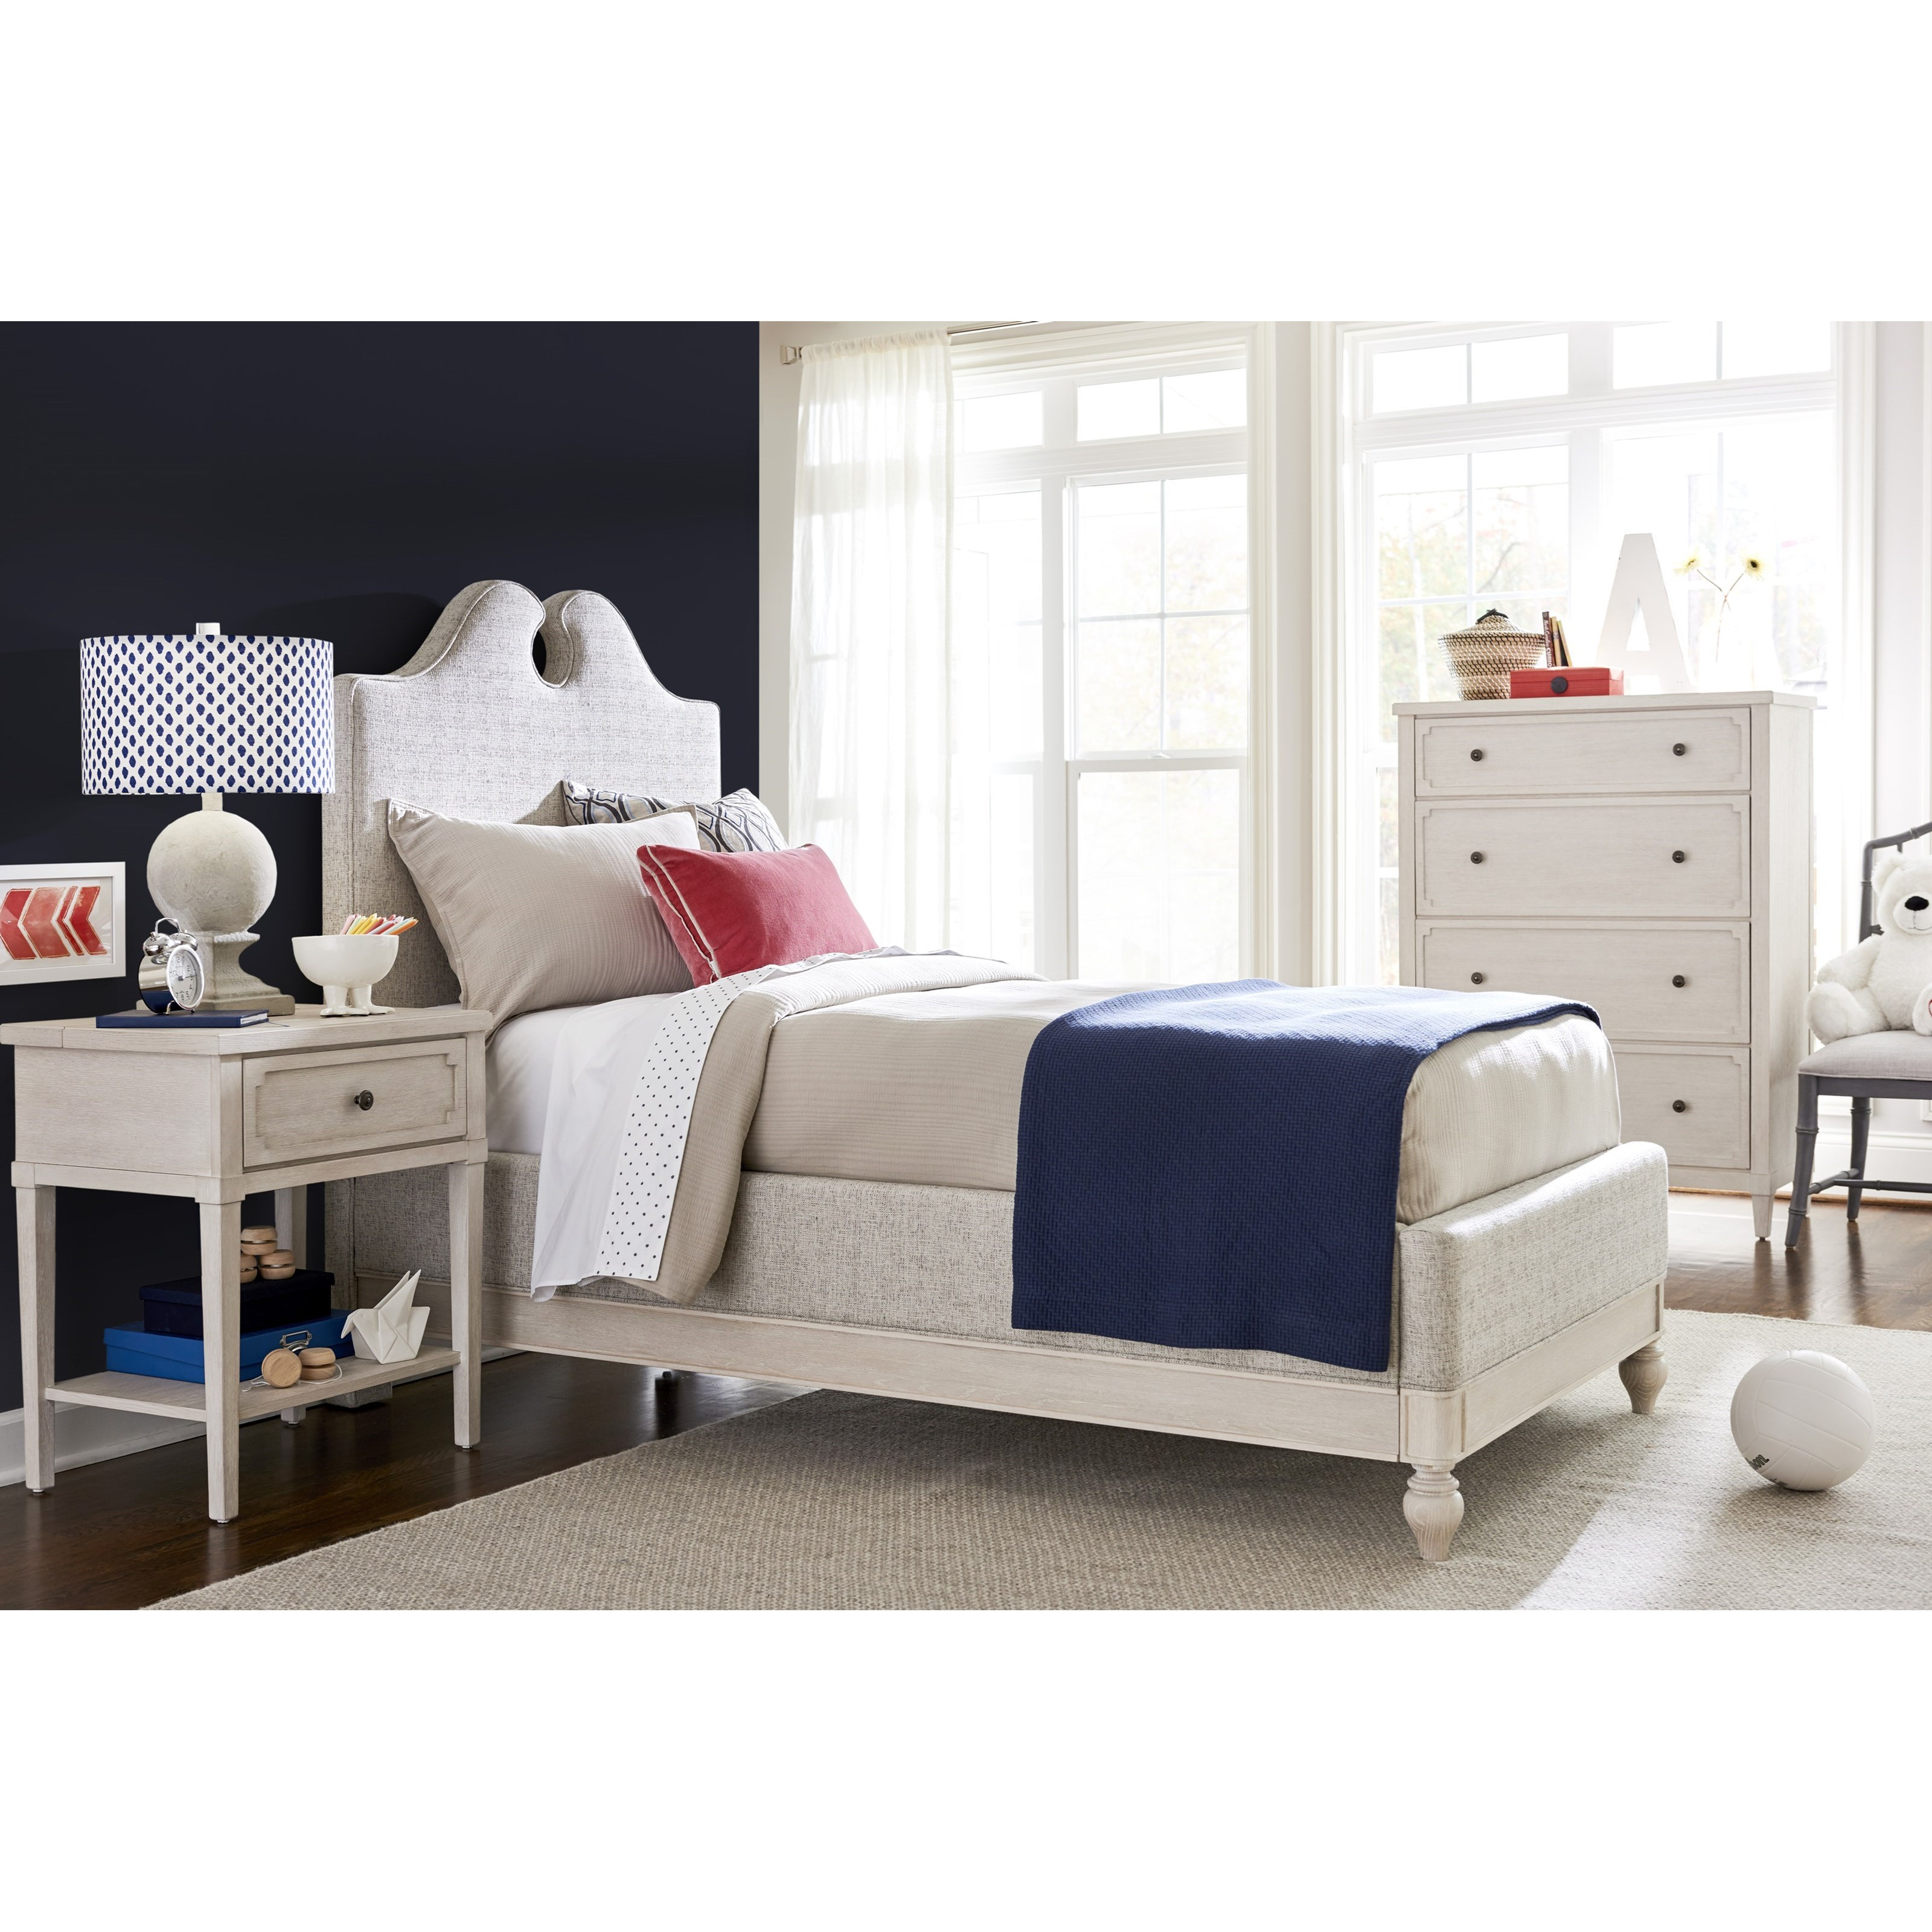 Twin Upholstered Bedroom Group